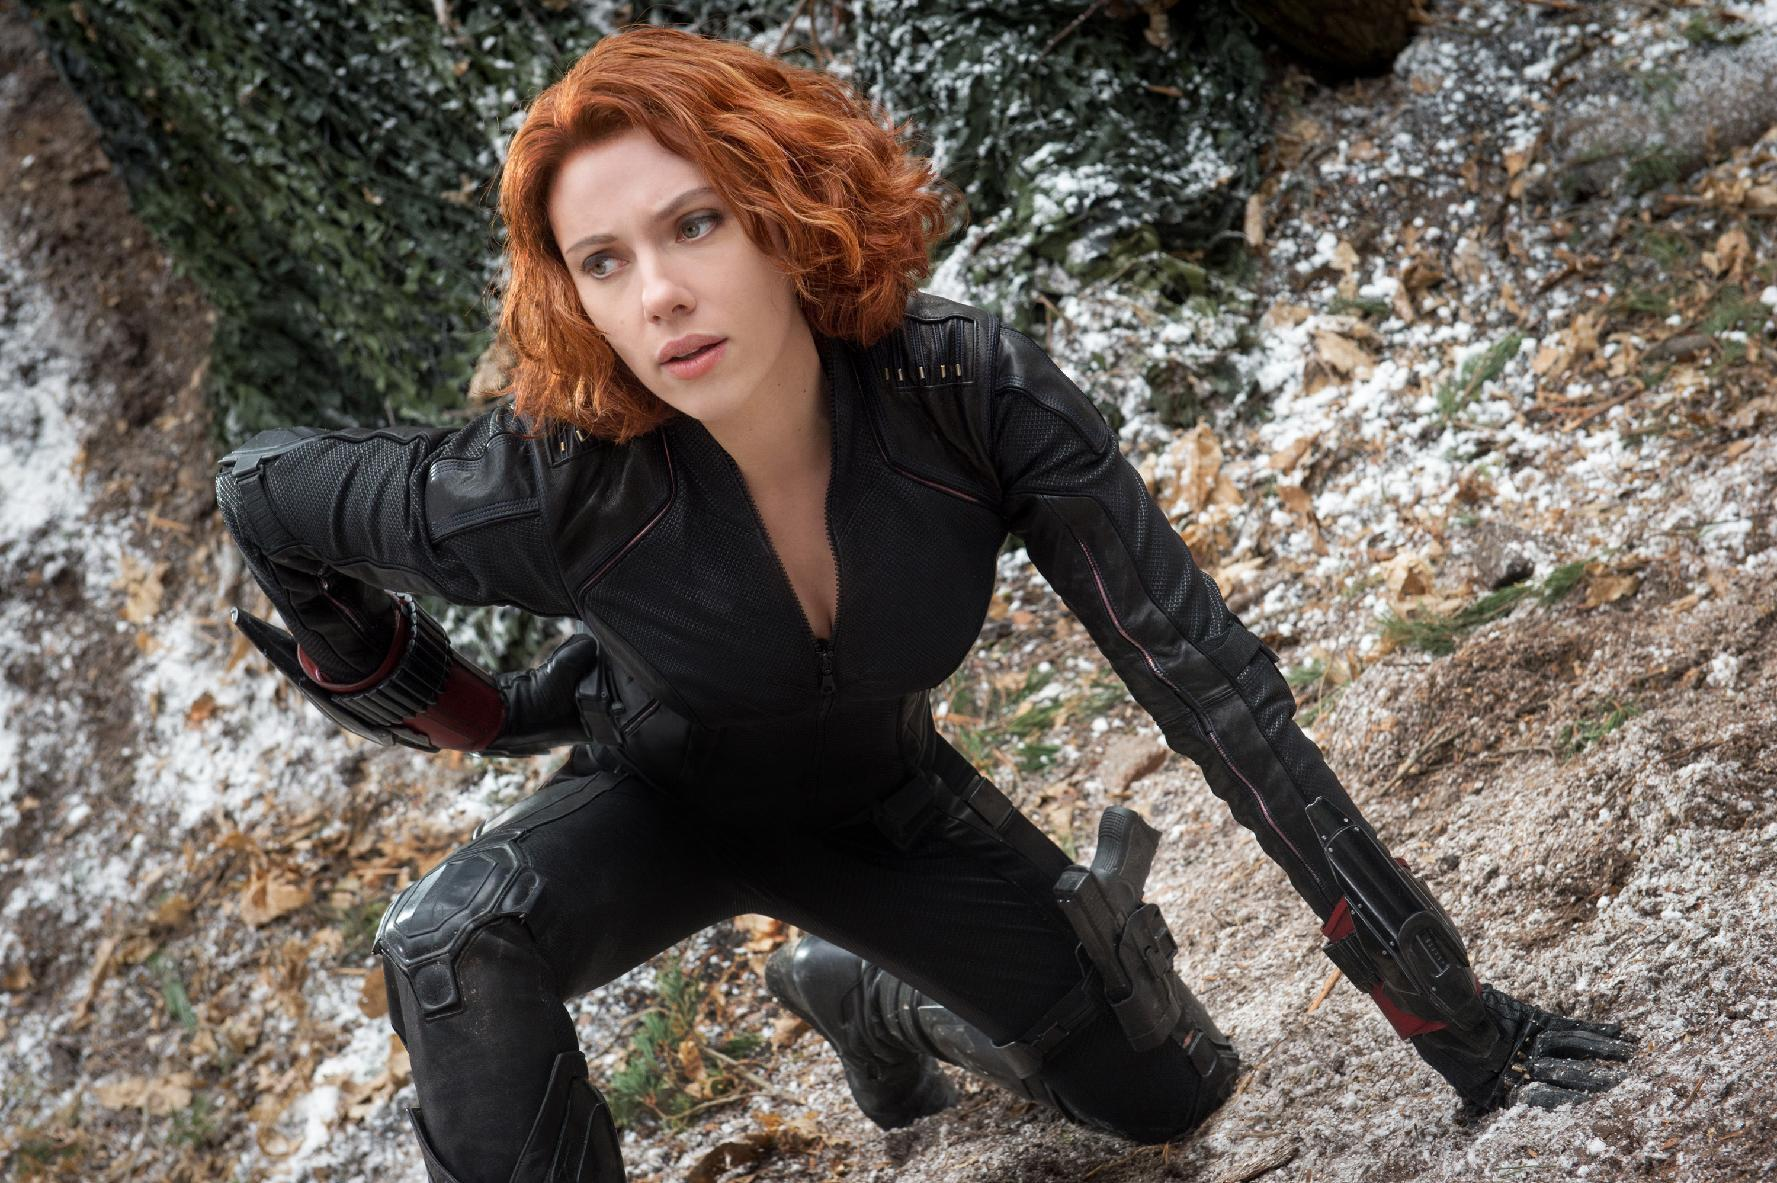 Box Office Top 20: 'Avengers' sequel soars to $191.3 million